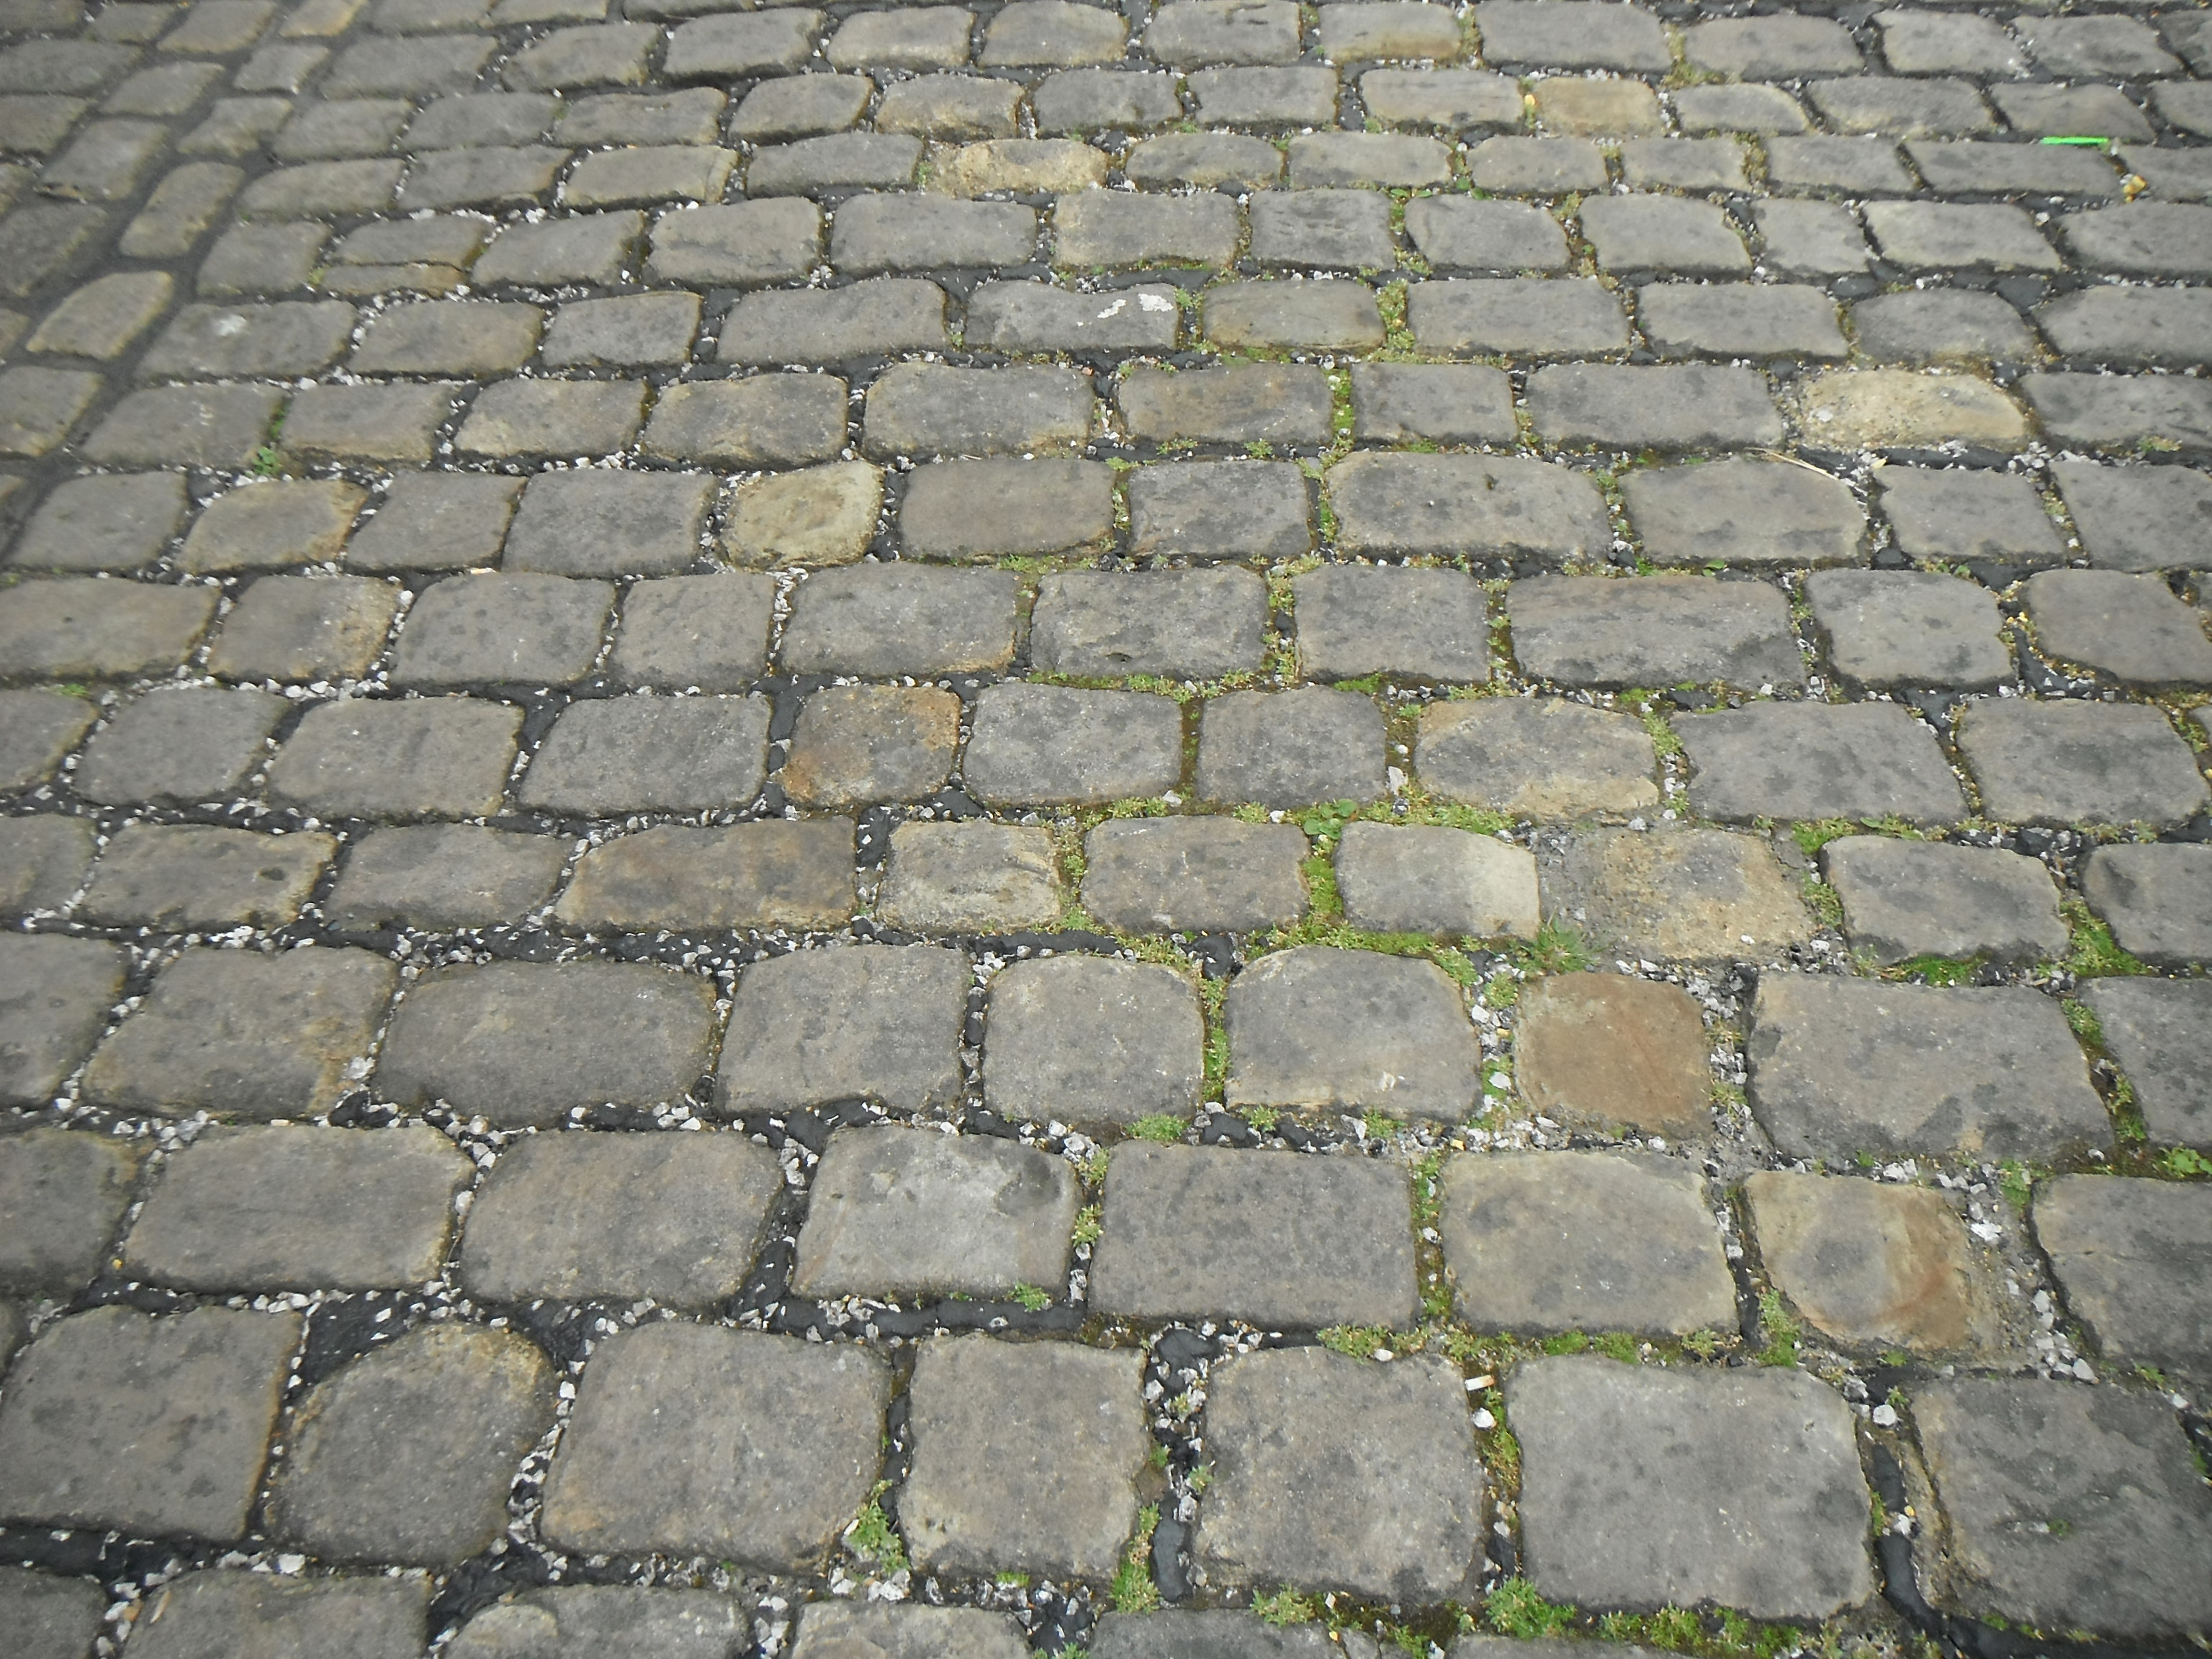 photo taken by me – A steep cobbled street in the village of Barnoldswick